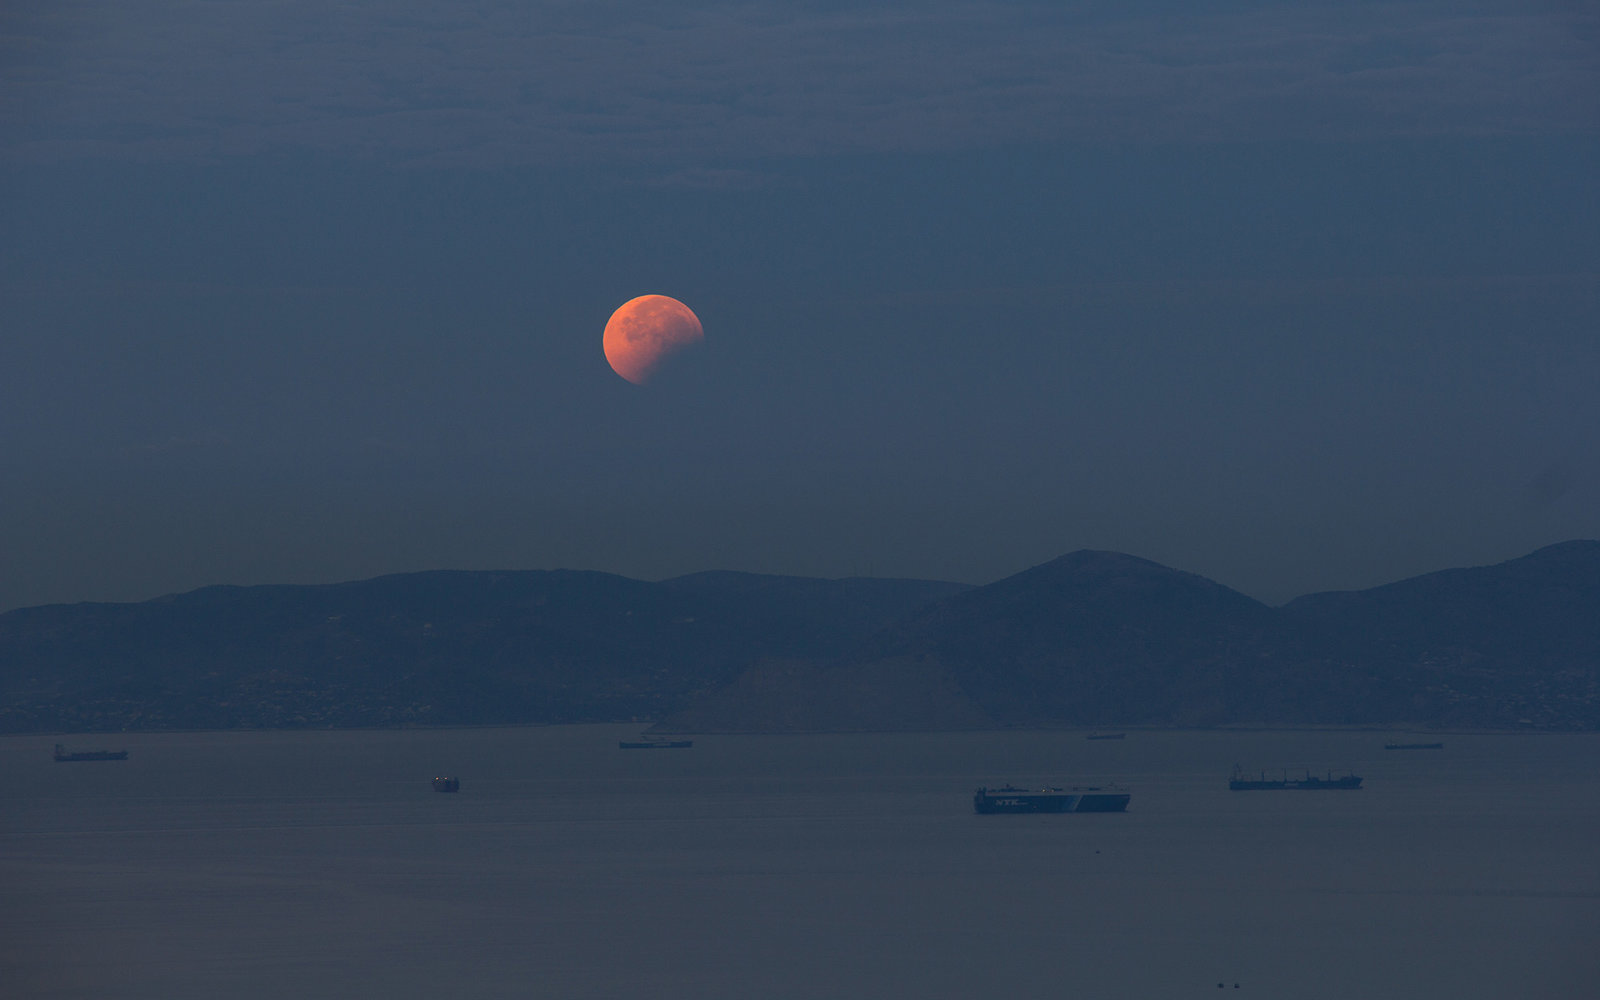 ATHENS, GREECE - 2015/09/28: The moon sets over the sea with the shadow still visible. A total lunar eclipse took place while the moon was on its closest distance from earth, also known as supermoon. The phenomenon has happened only five times since 1900